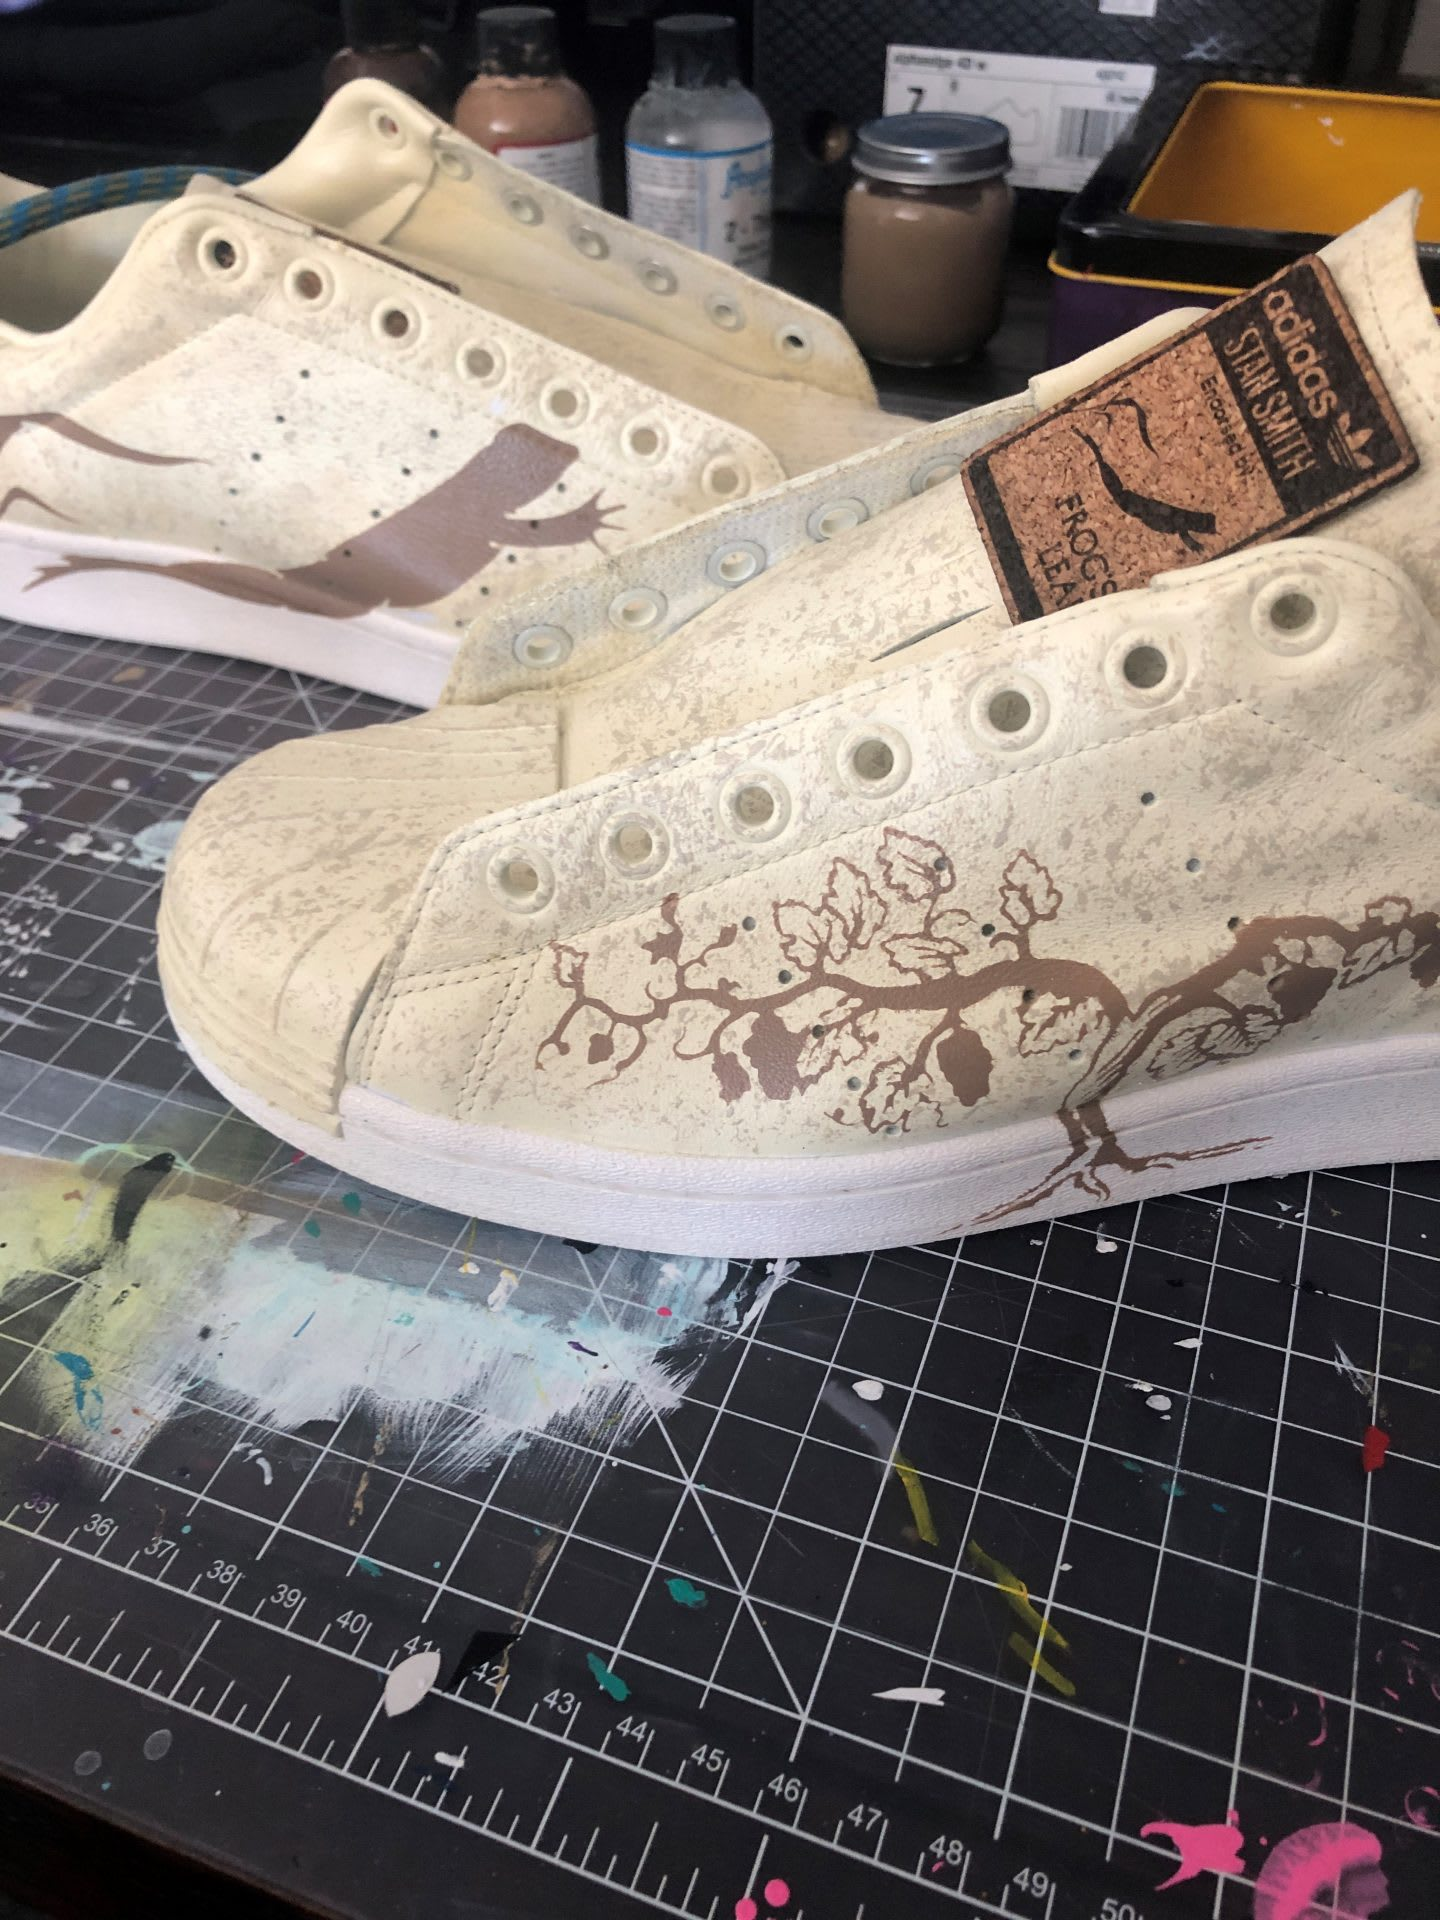 Cream colored sneakers customized with bespoke patterns, design, shoes, trainers, sneakers, Todd Standsbury, creative, adidas, employee